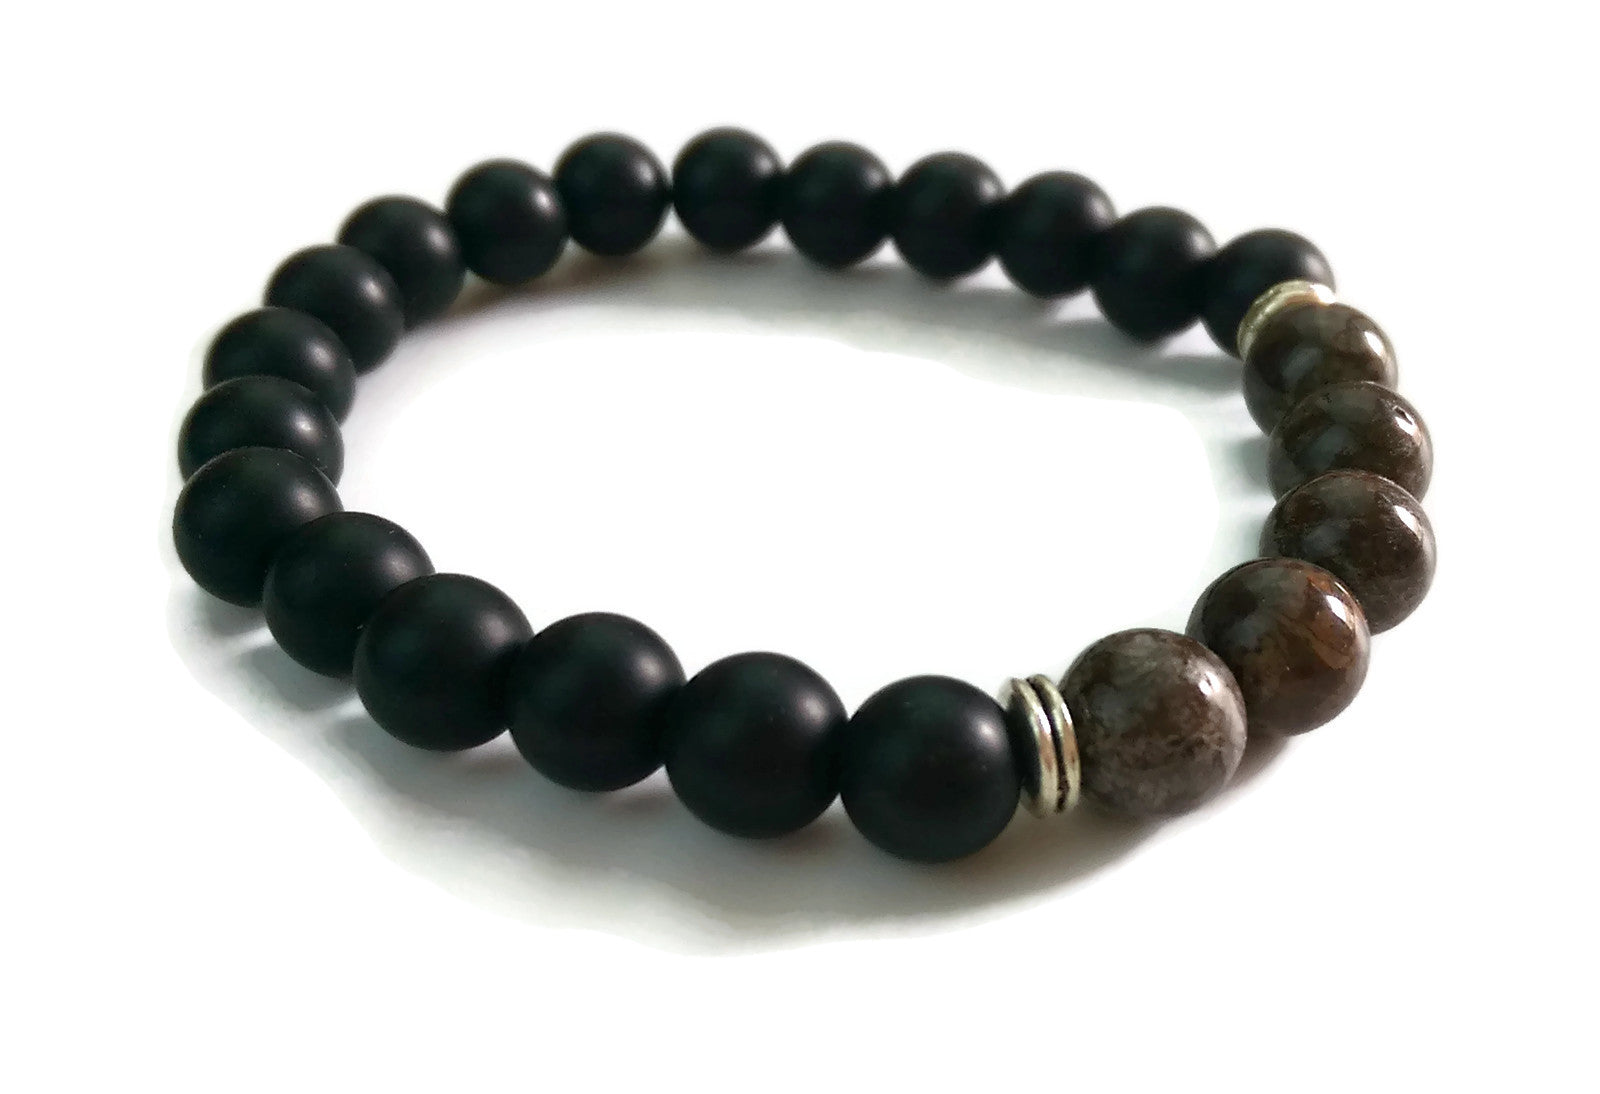 8mm Black Matte Obsidian and Dark Jasper Stone Silver Stretch Bracelet Minimal Meditation Yoga Stackable Wrist Mala Stretch  Root Chakra